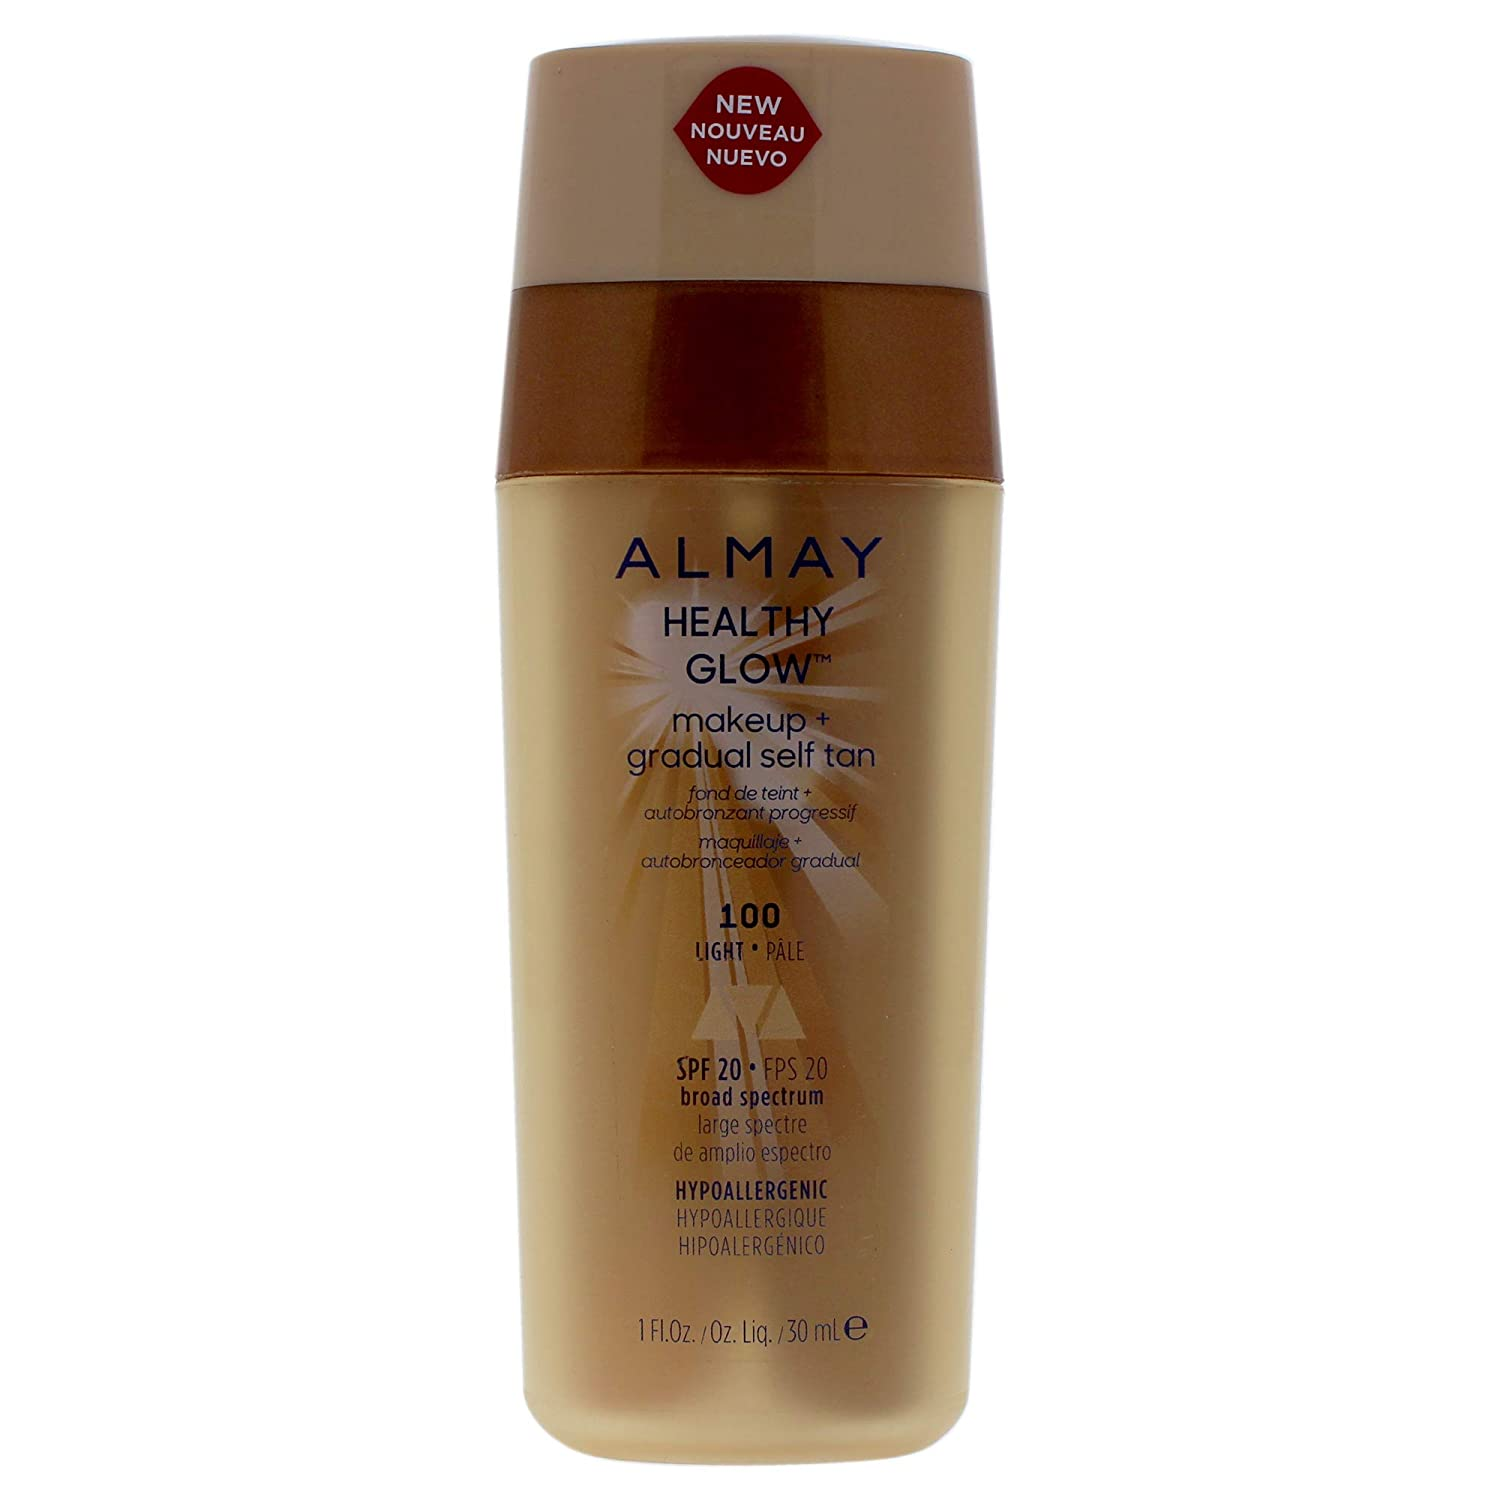 Almay Healthy Glow Makeup Plus Gradual Self Tan - 100 Light By Almay for Women - 1 Oz Foundation, 1 Oz